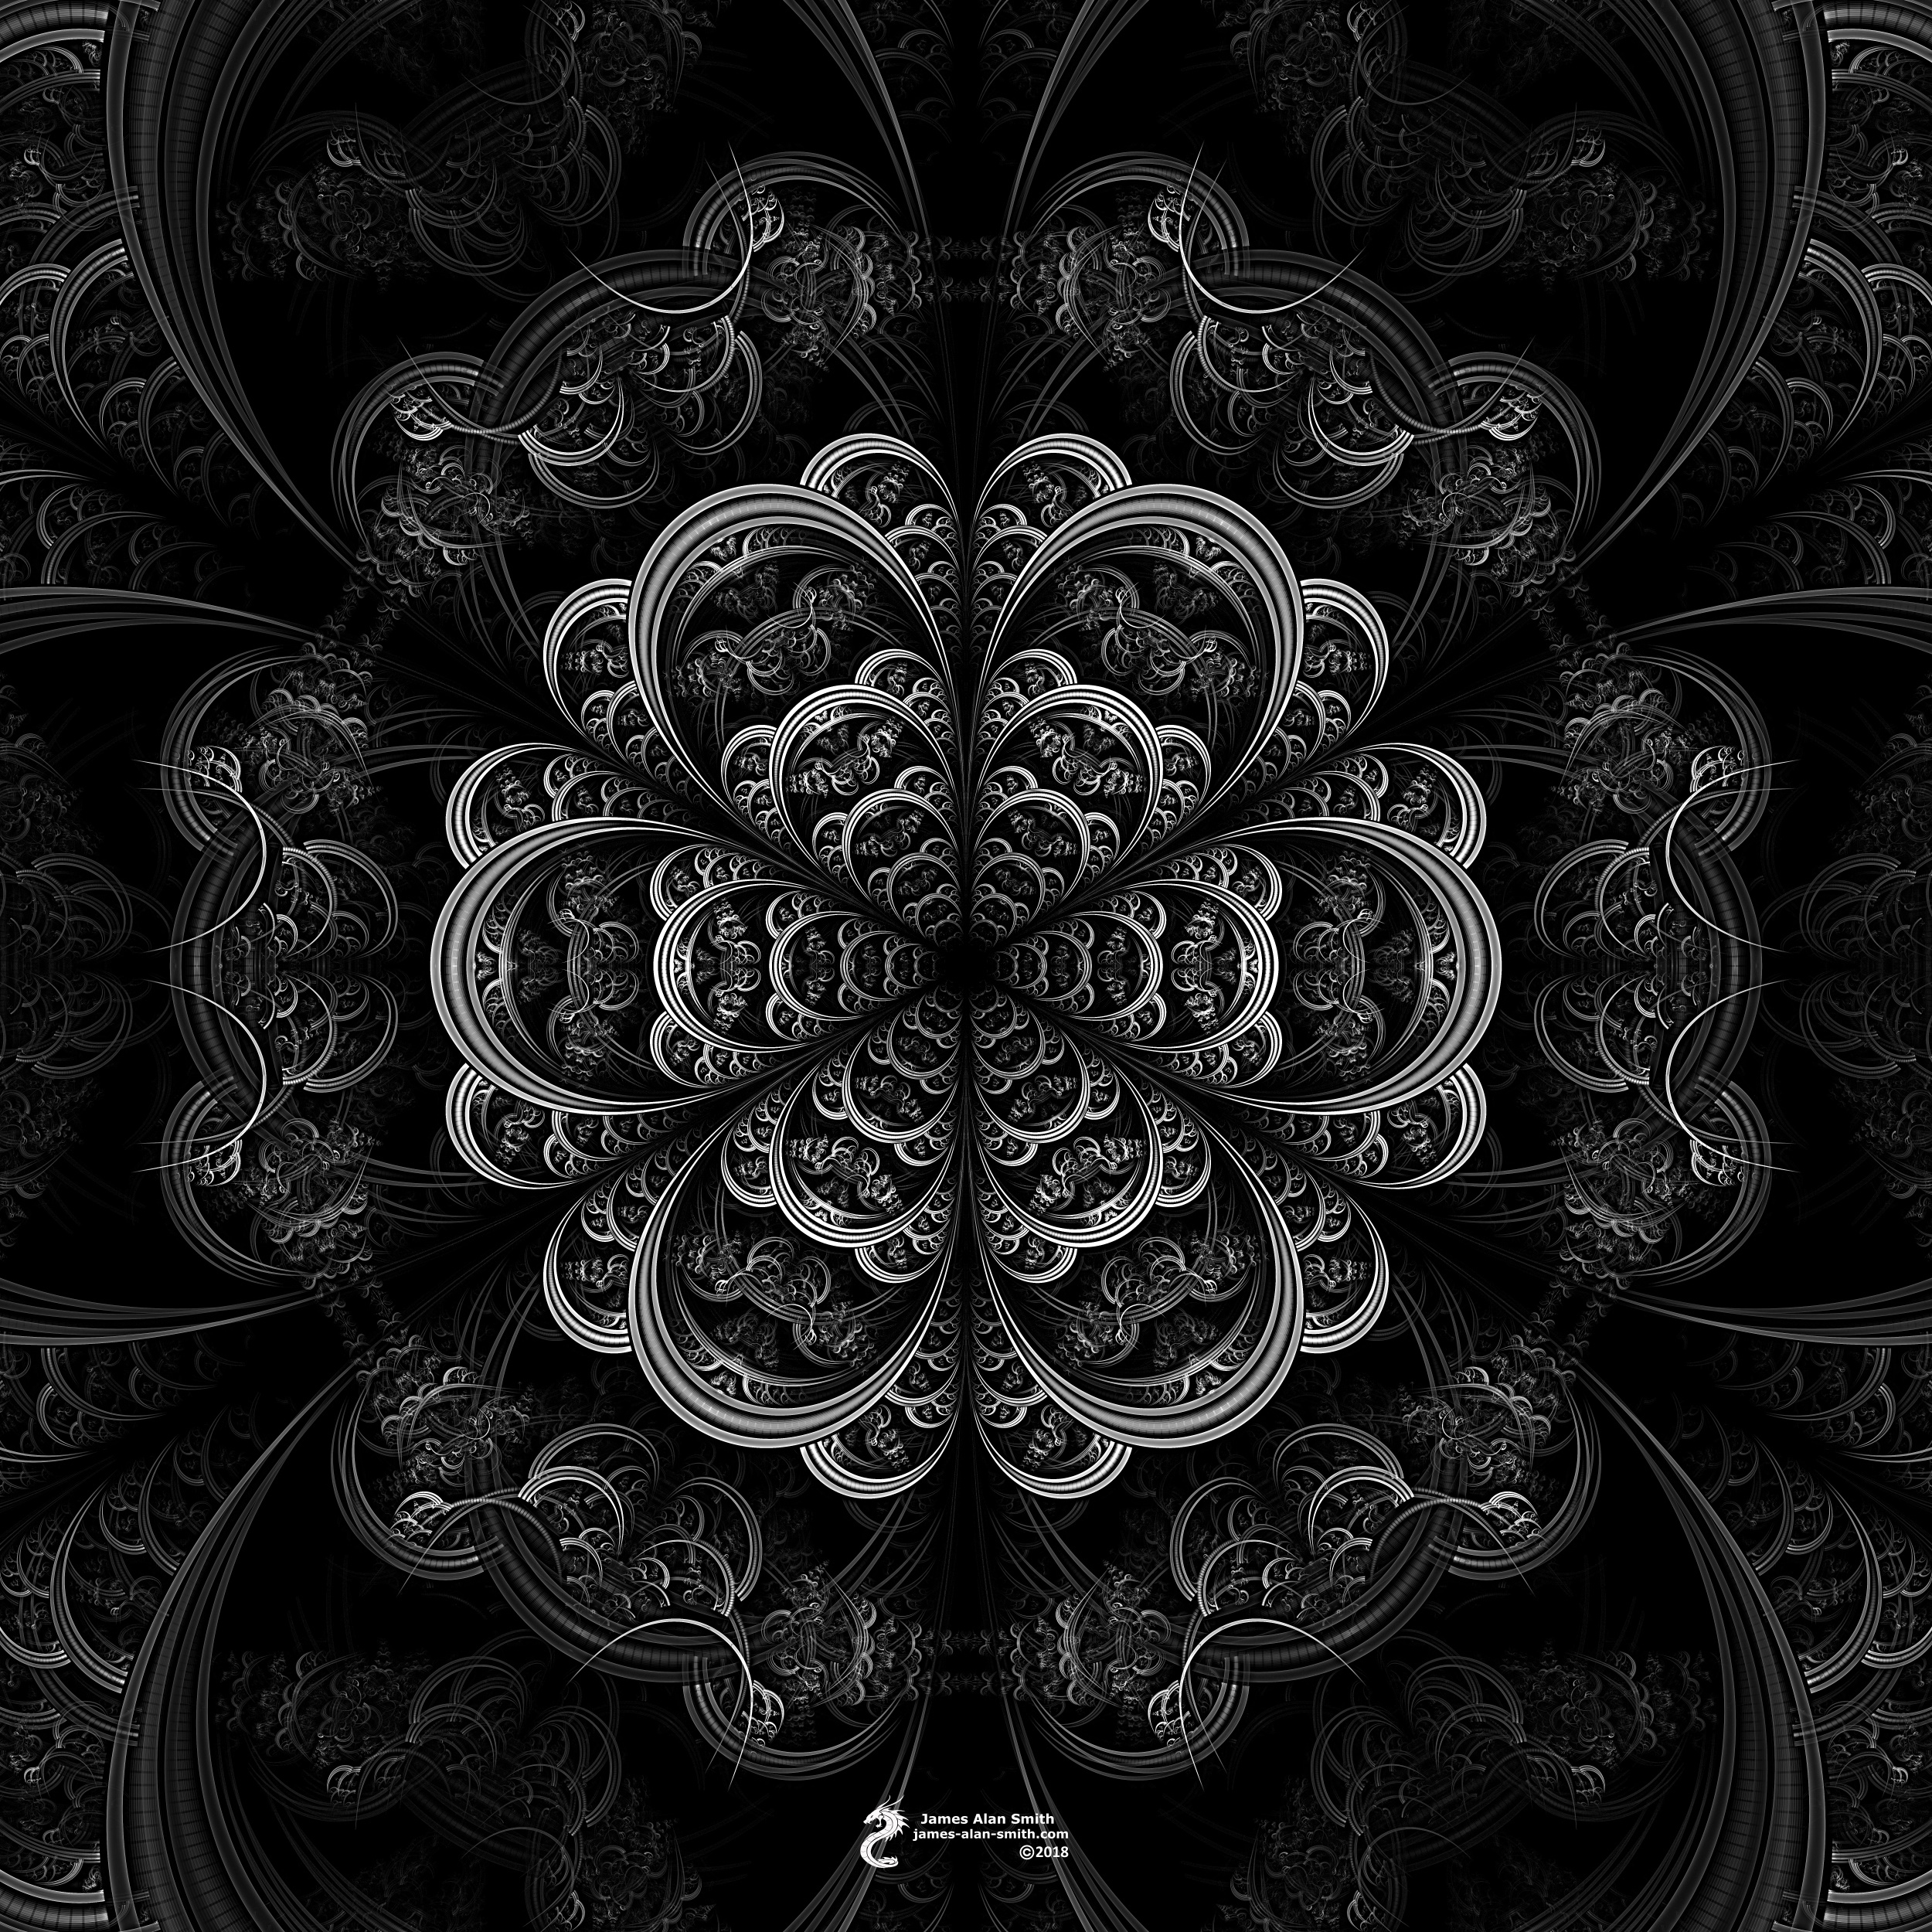 Black And White Mandala By James Alan Smith